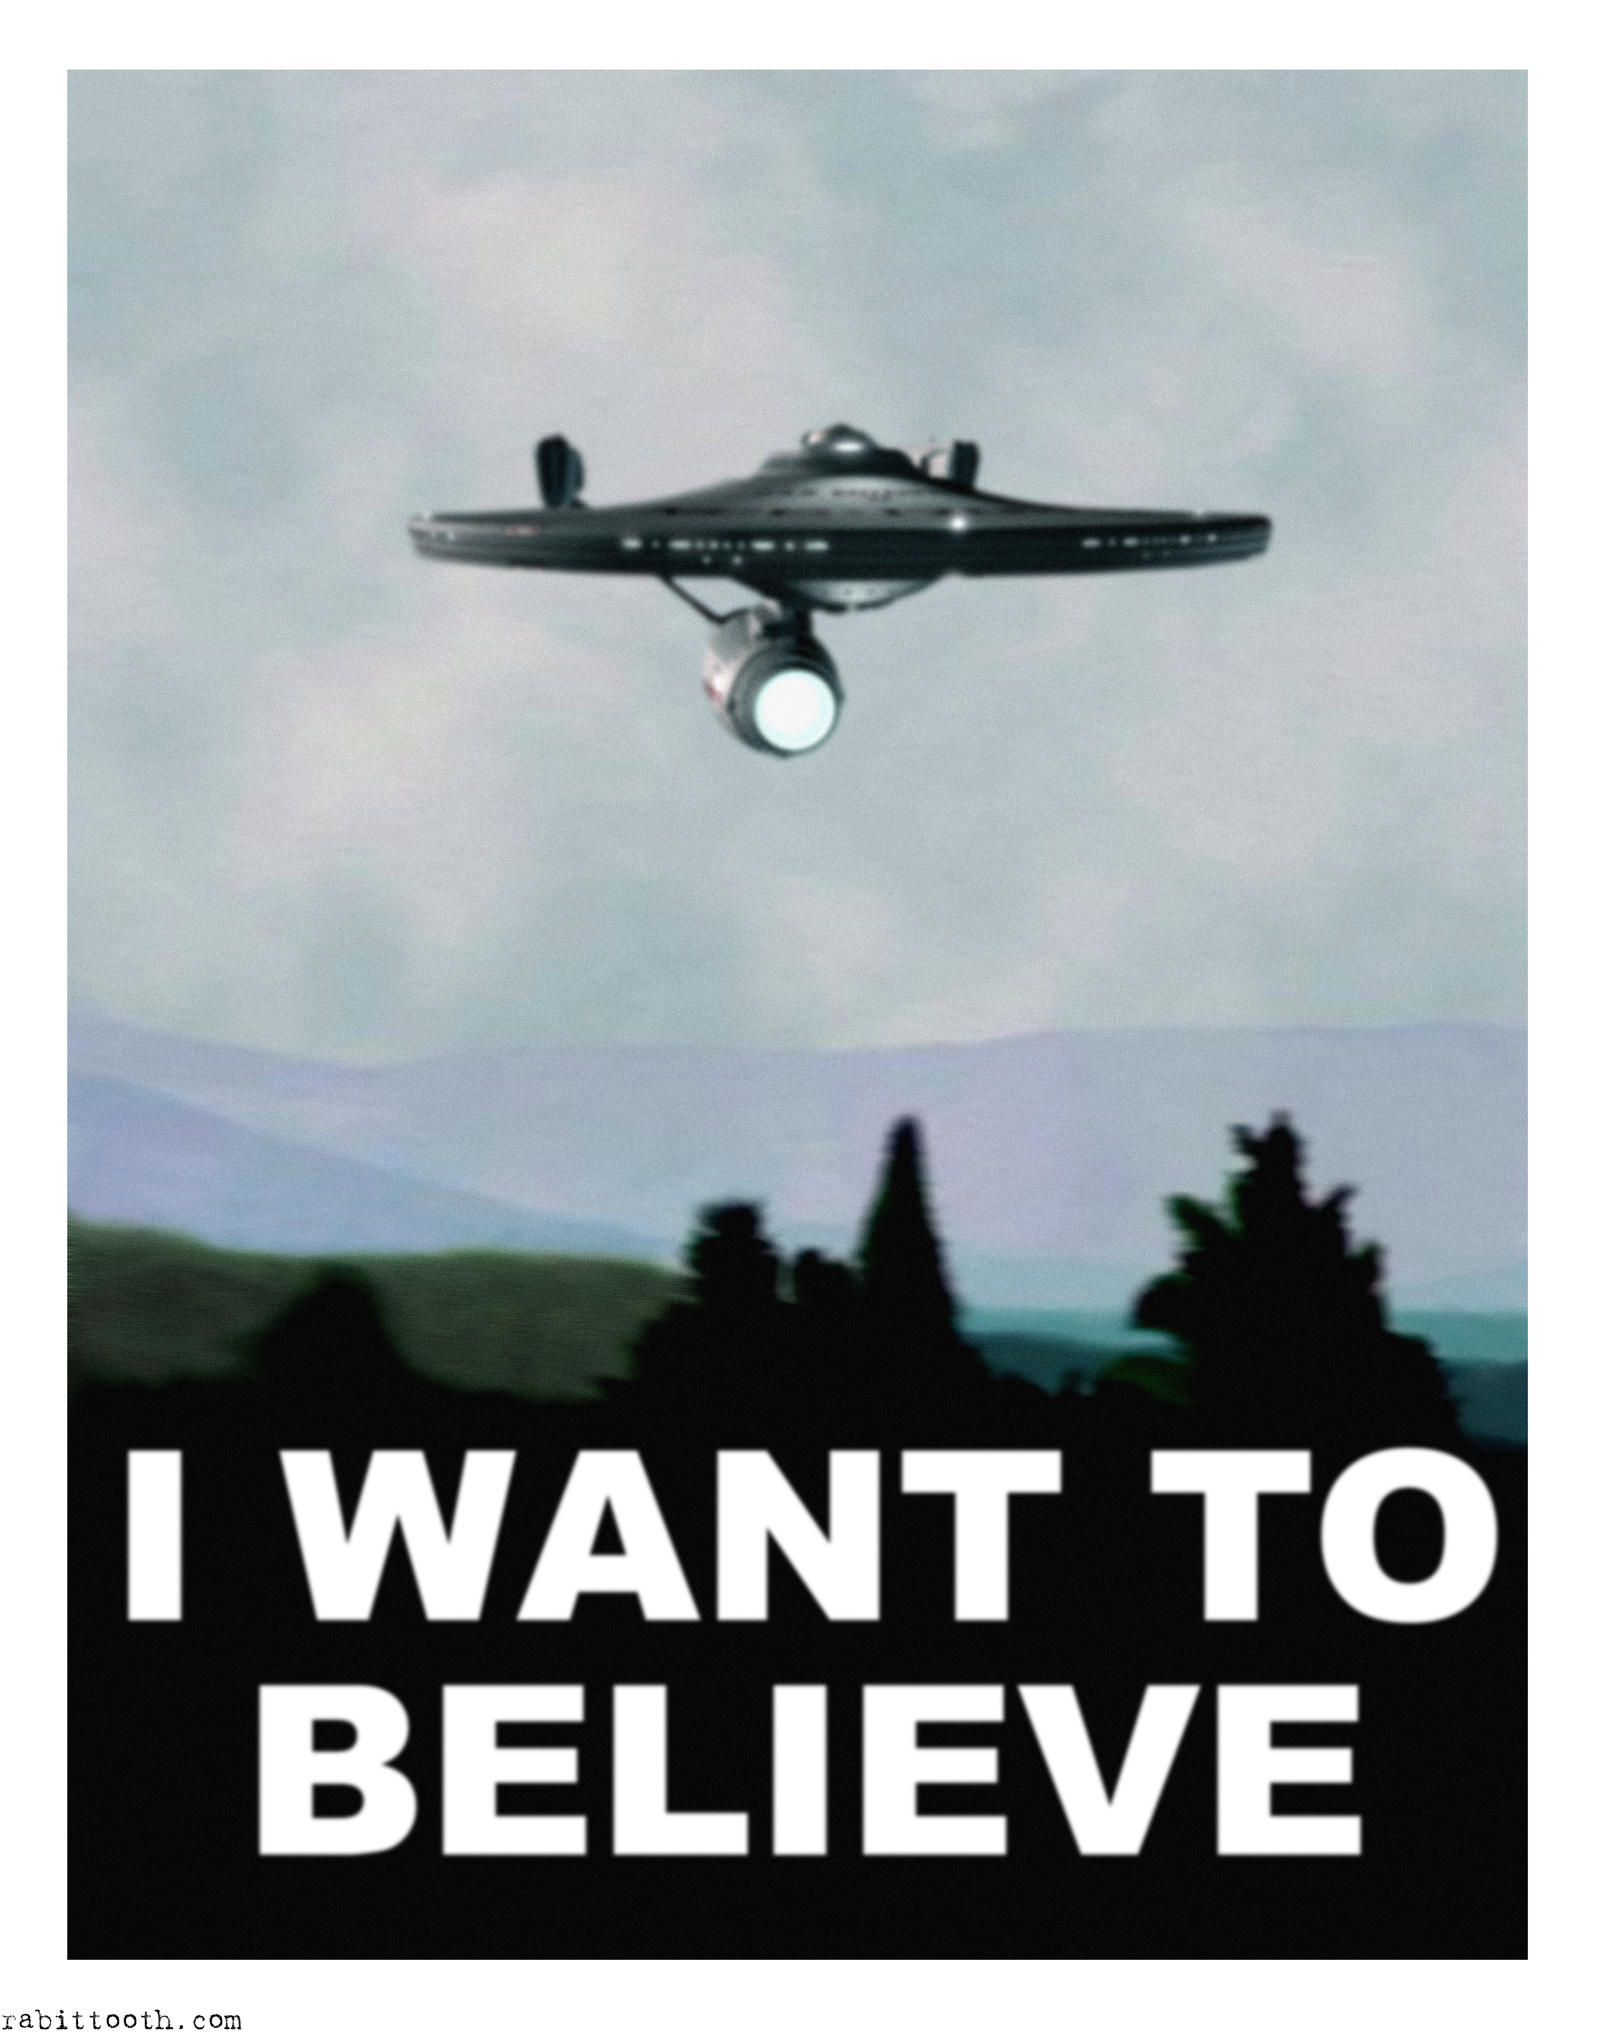 Enterprise X files I Want to Believe Poster by RabittoothX Files Wallpaper I Want To Believe